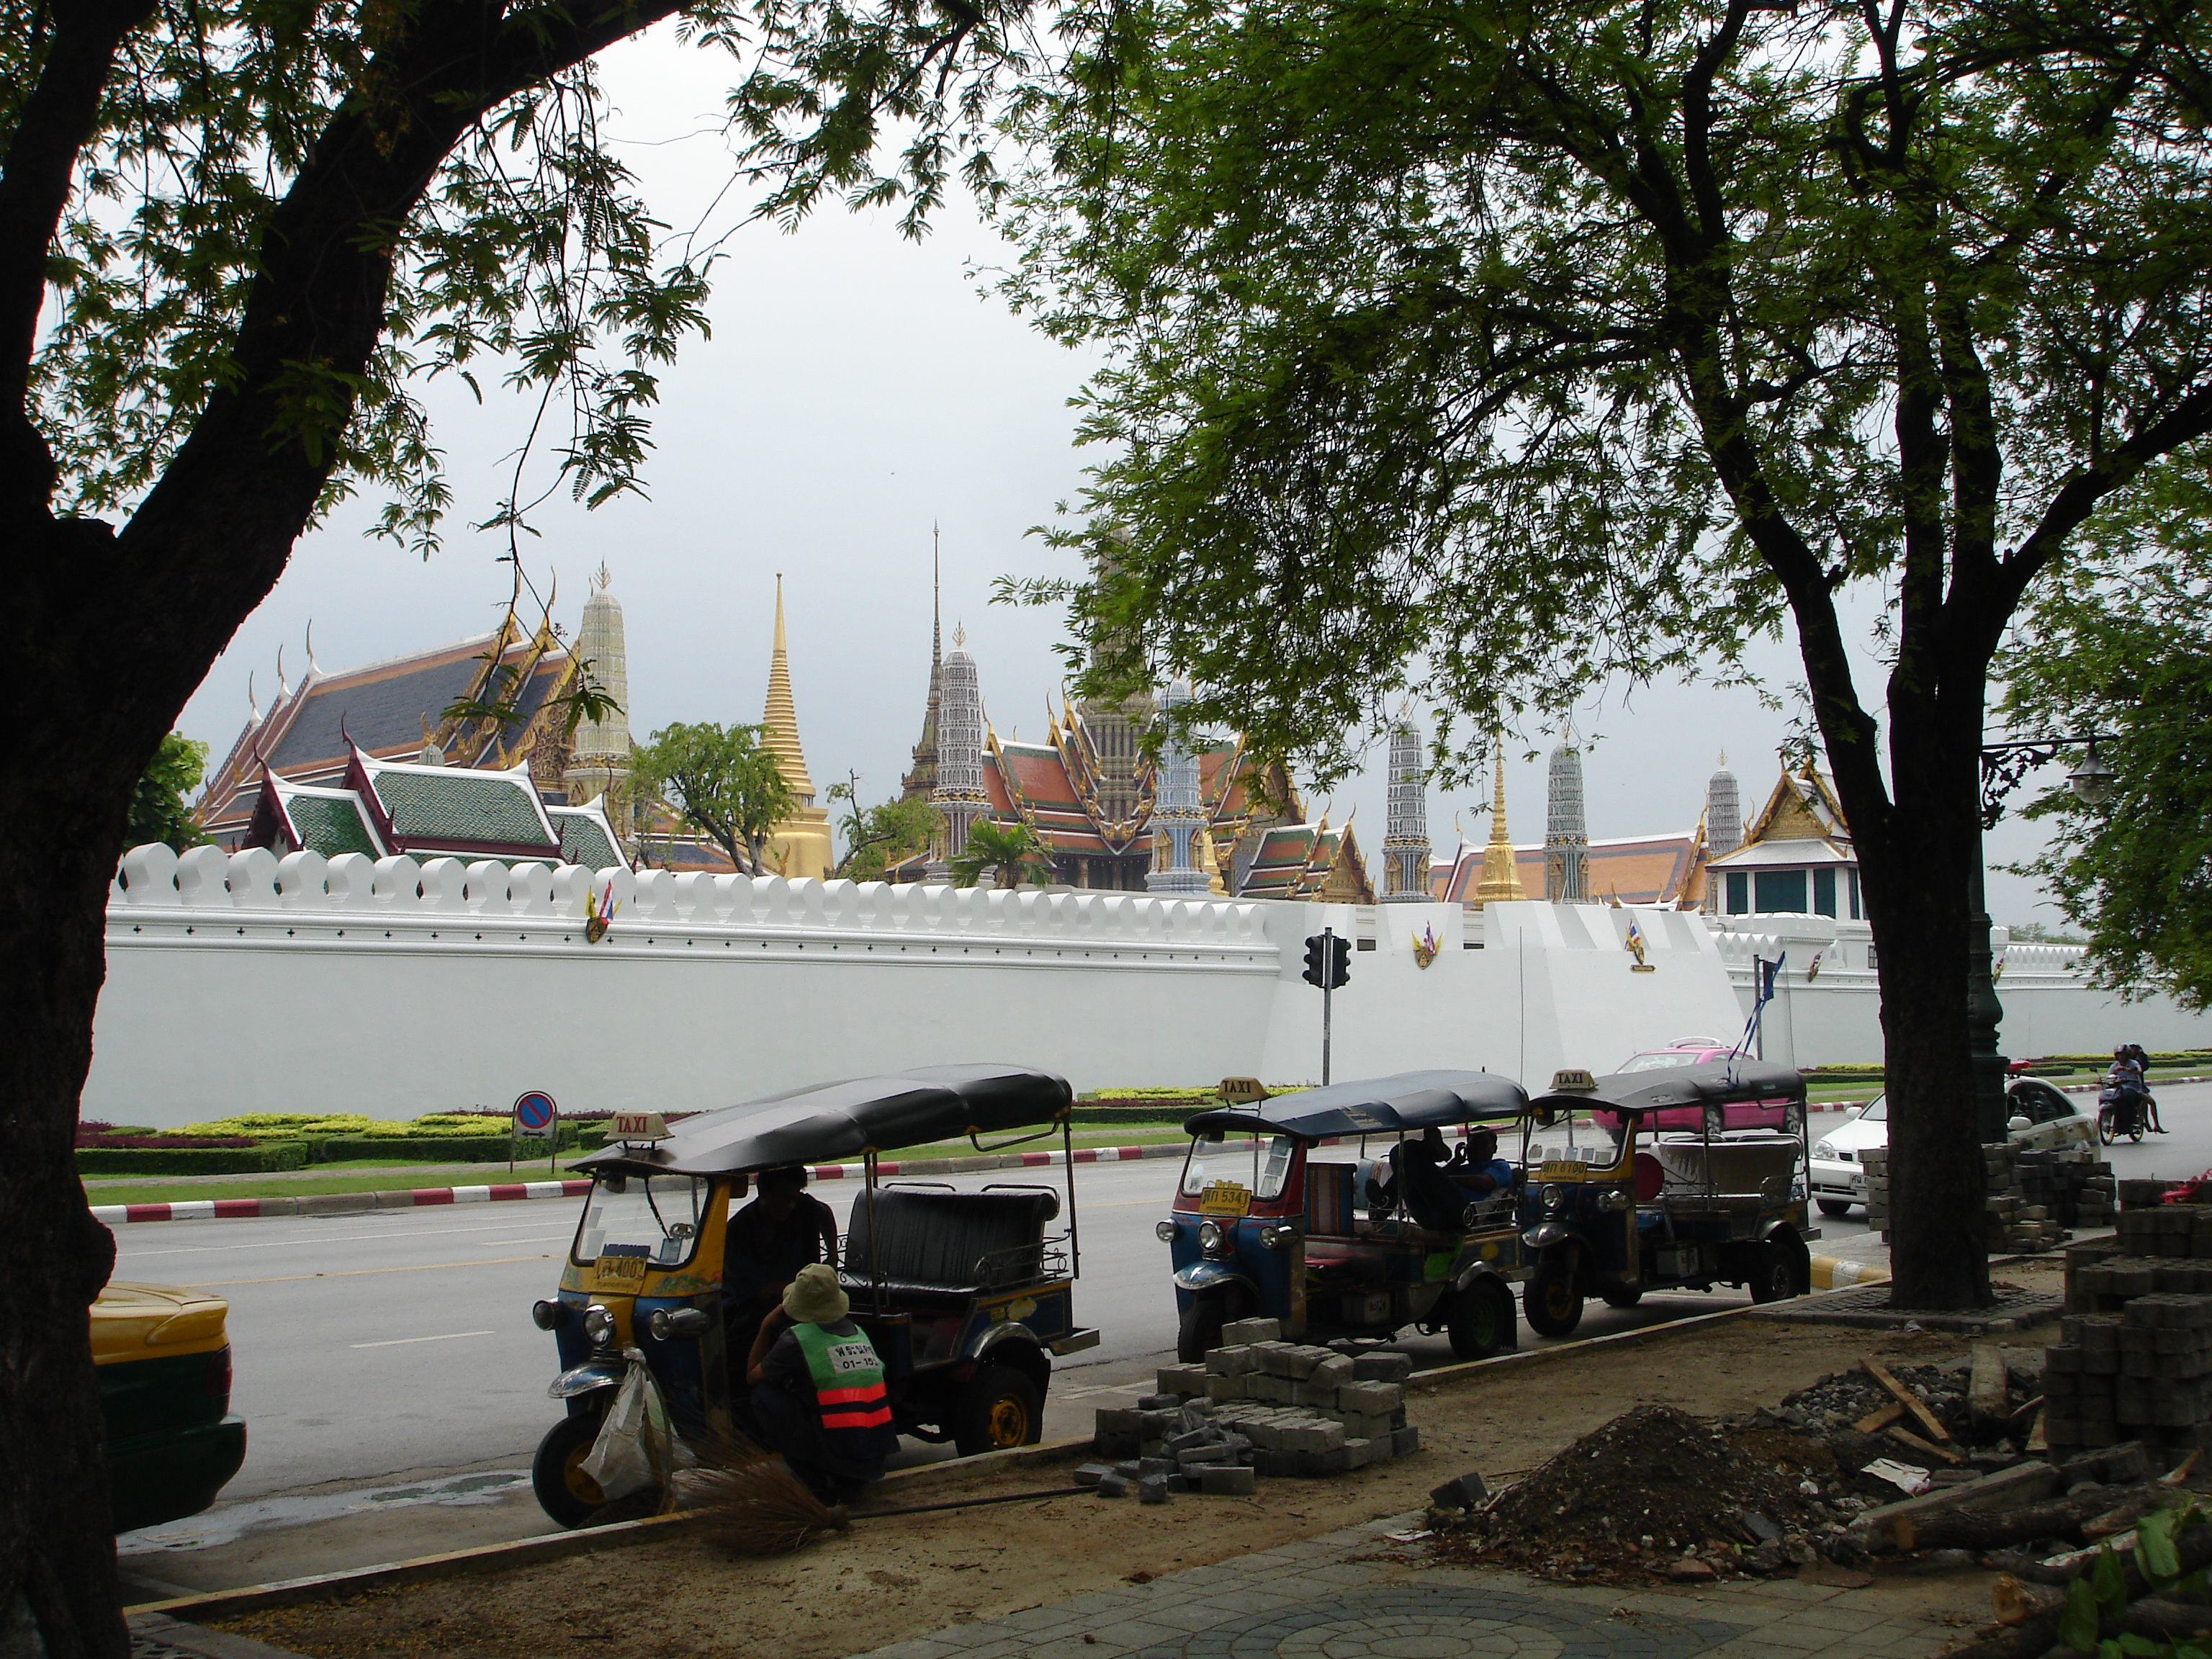 A small portion of the Grand Palace behind its crenelated walls as seen from Sanam Luang. Photo taken by Mark Jochim on May 17, 2006.